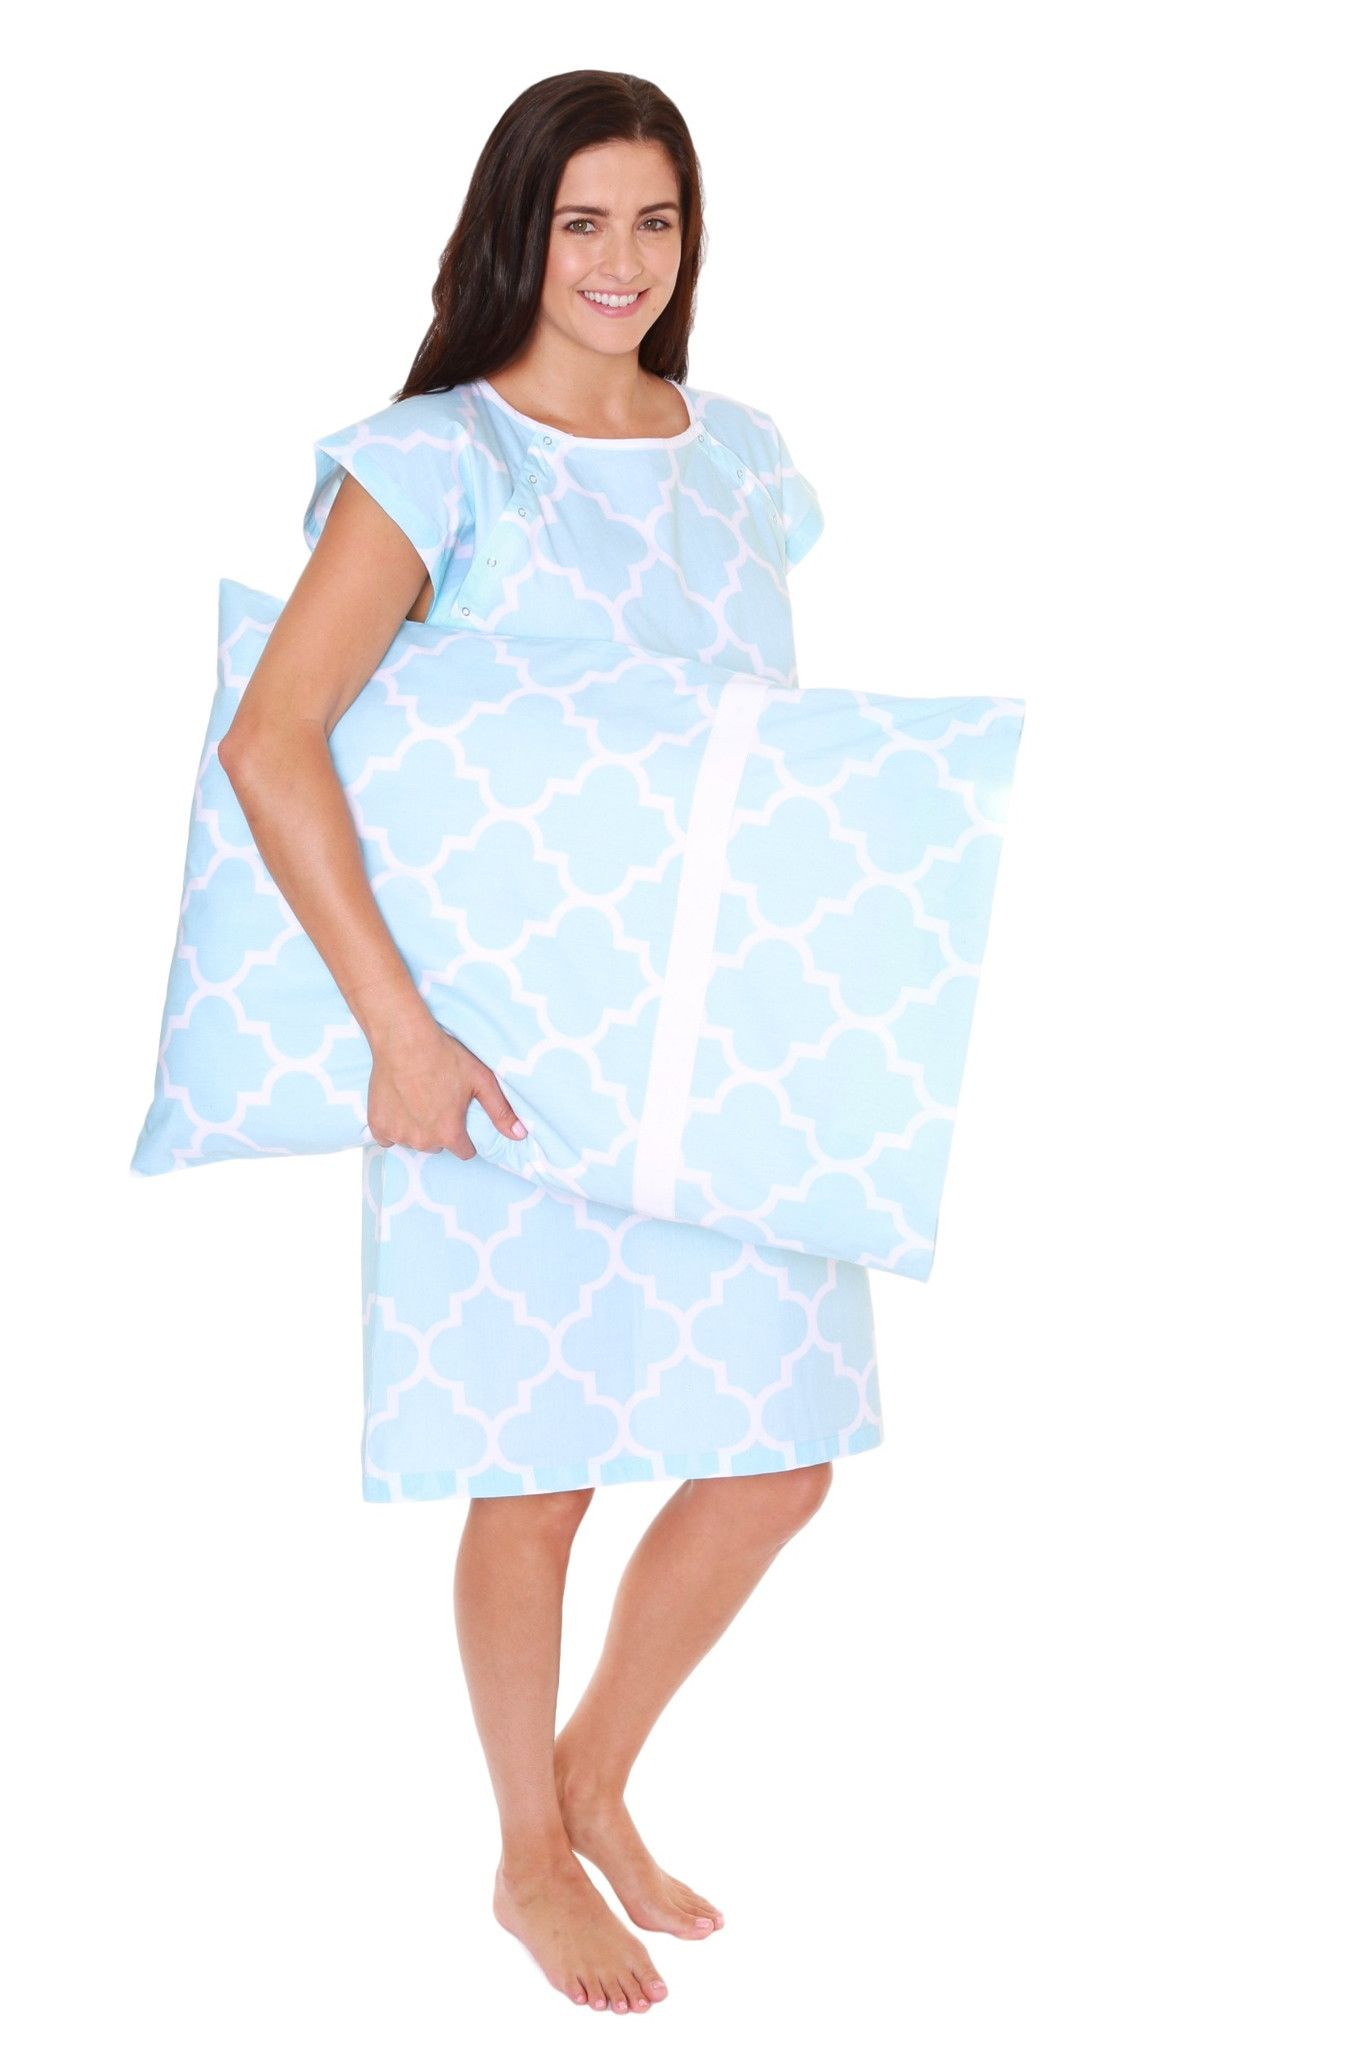 Marin Maternity Labor Delivery Hospital Gown Gownie & Pillowcase Set